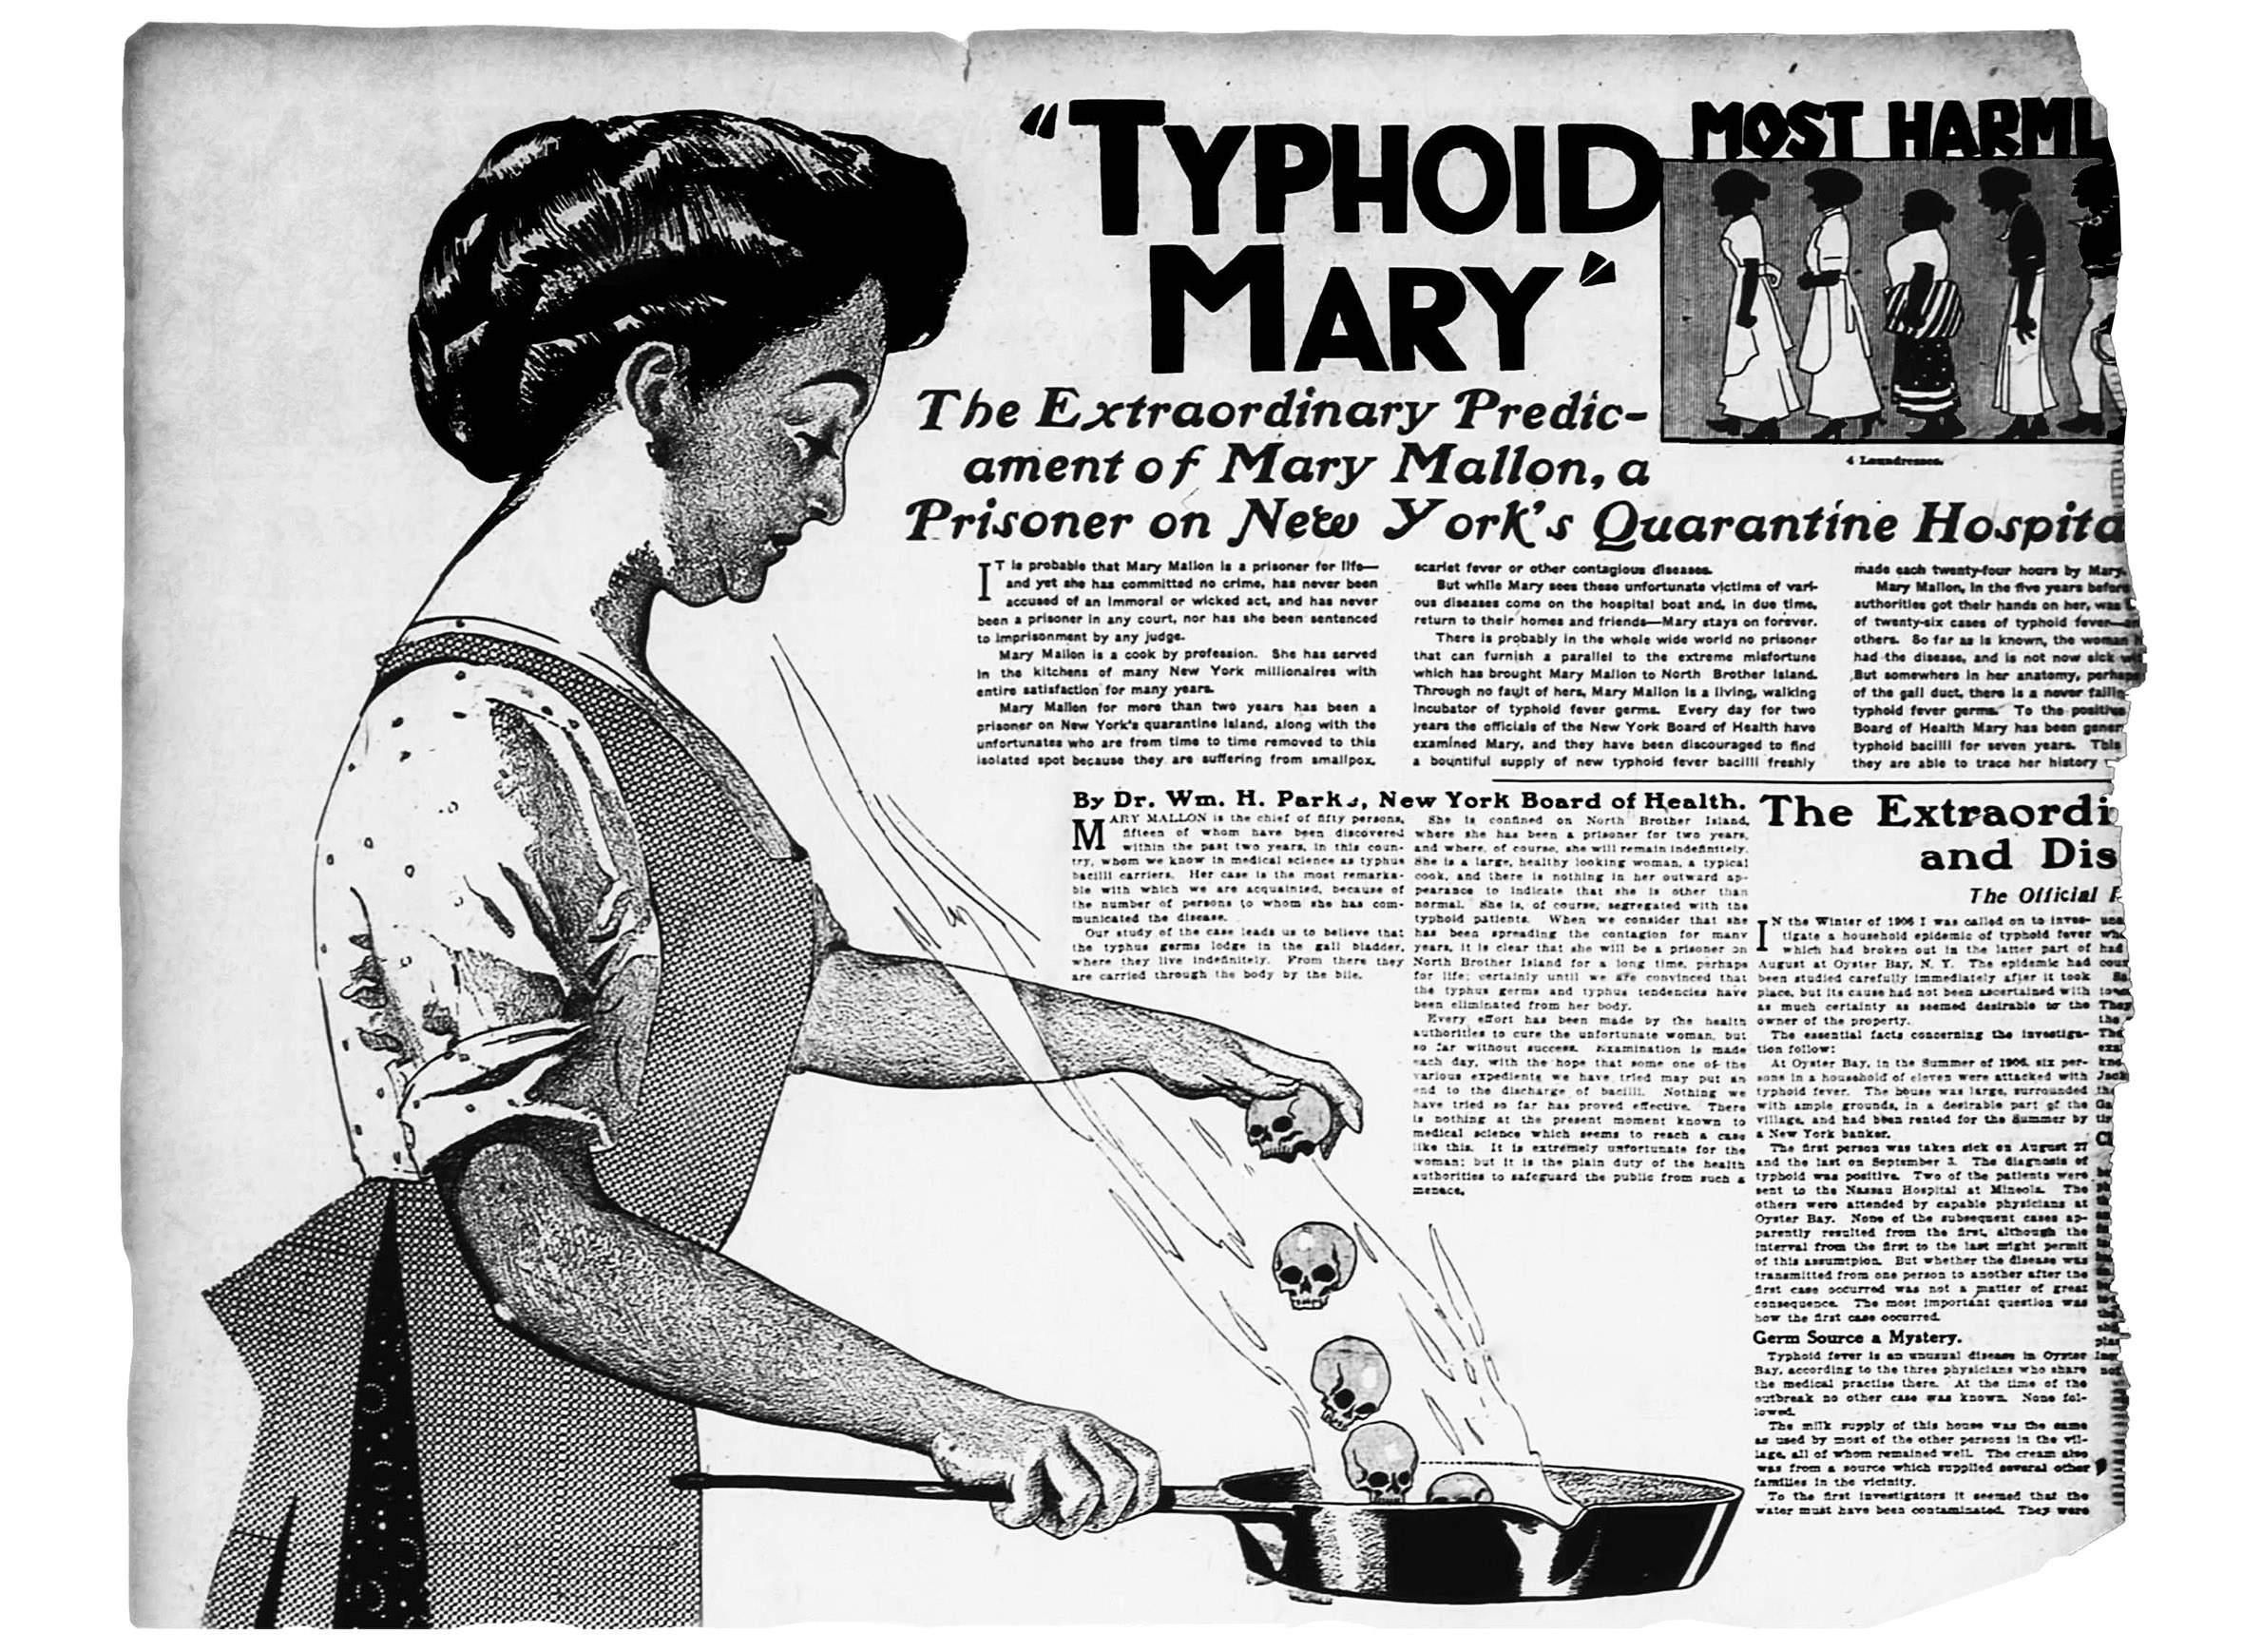 """An illustration and article published in the June 20, 1909 edition of The New York American labels Mary Mallon as """"Typhoid Mary"""" and discusses her forced quarantine. Photo from the The New York American. (Public Domain)."""